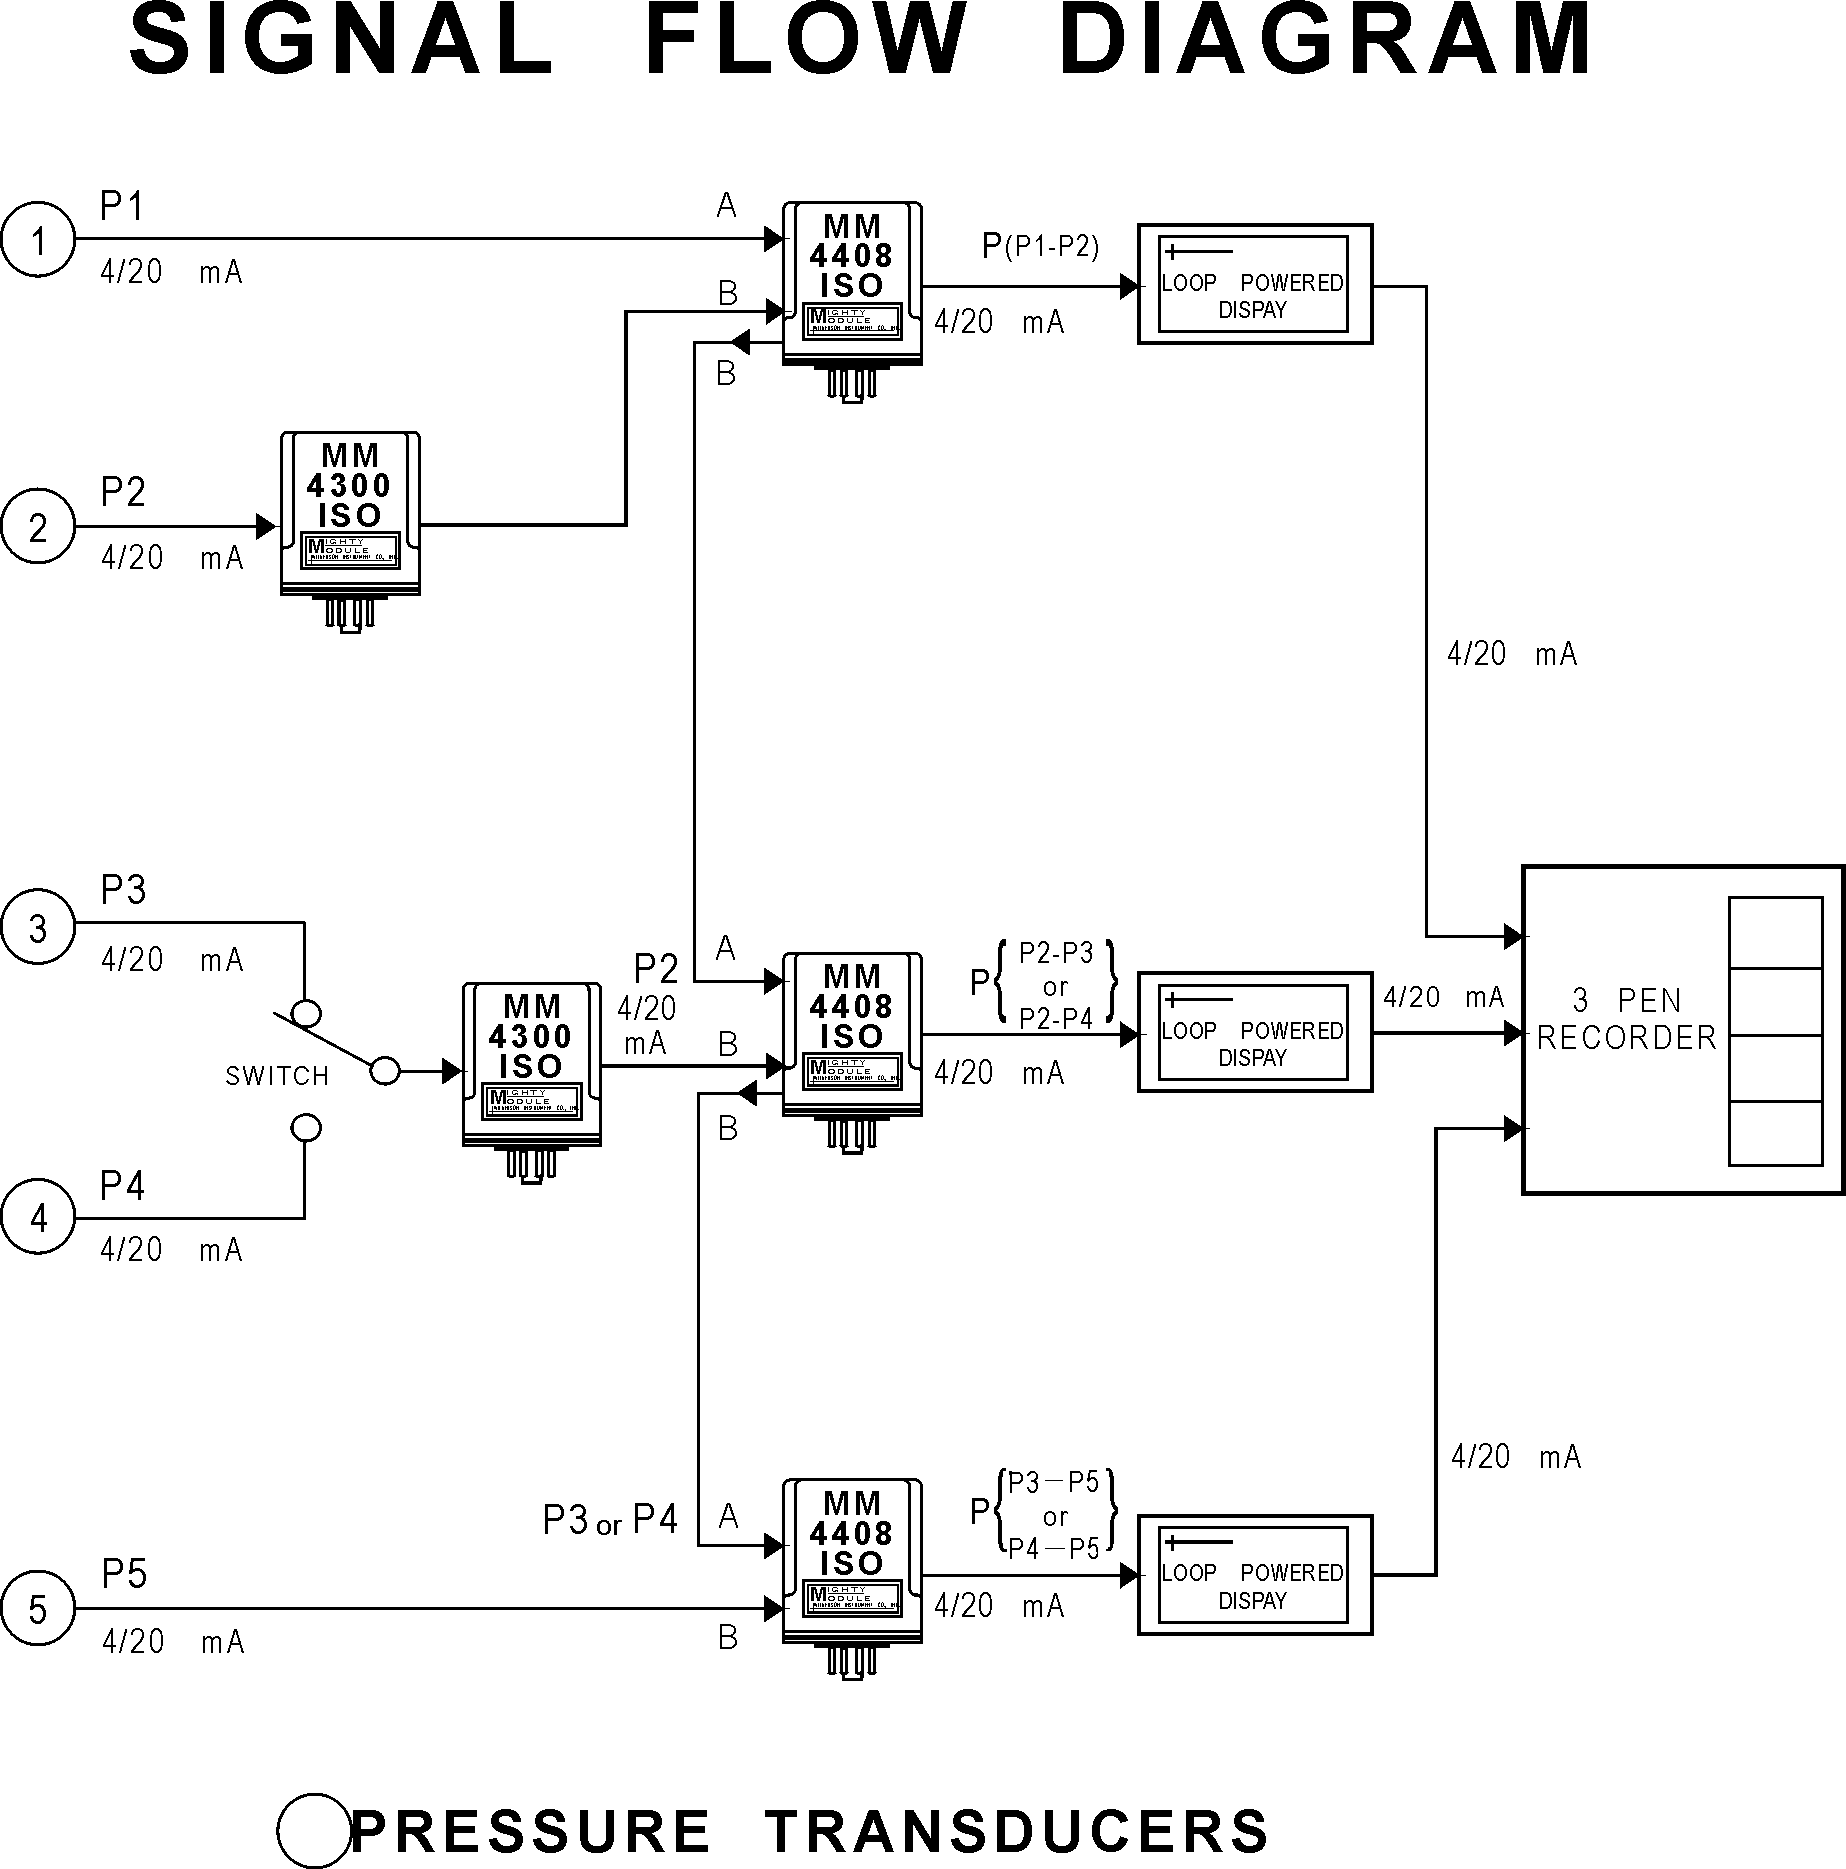 Signal Wiring Diagram Real Turn Signals Limeworks Ts1342 900 Stat Get Free Image About Federal